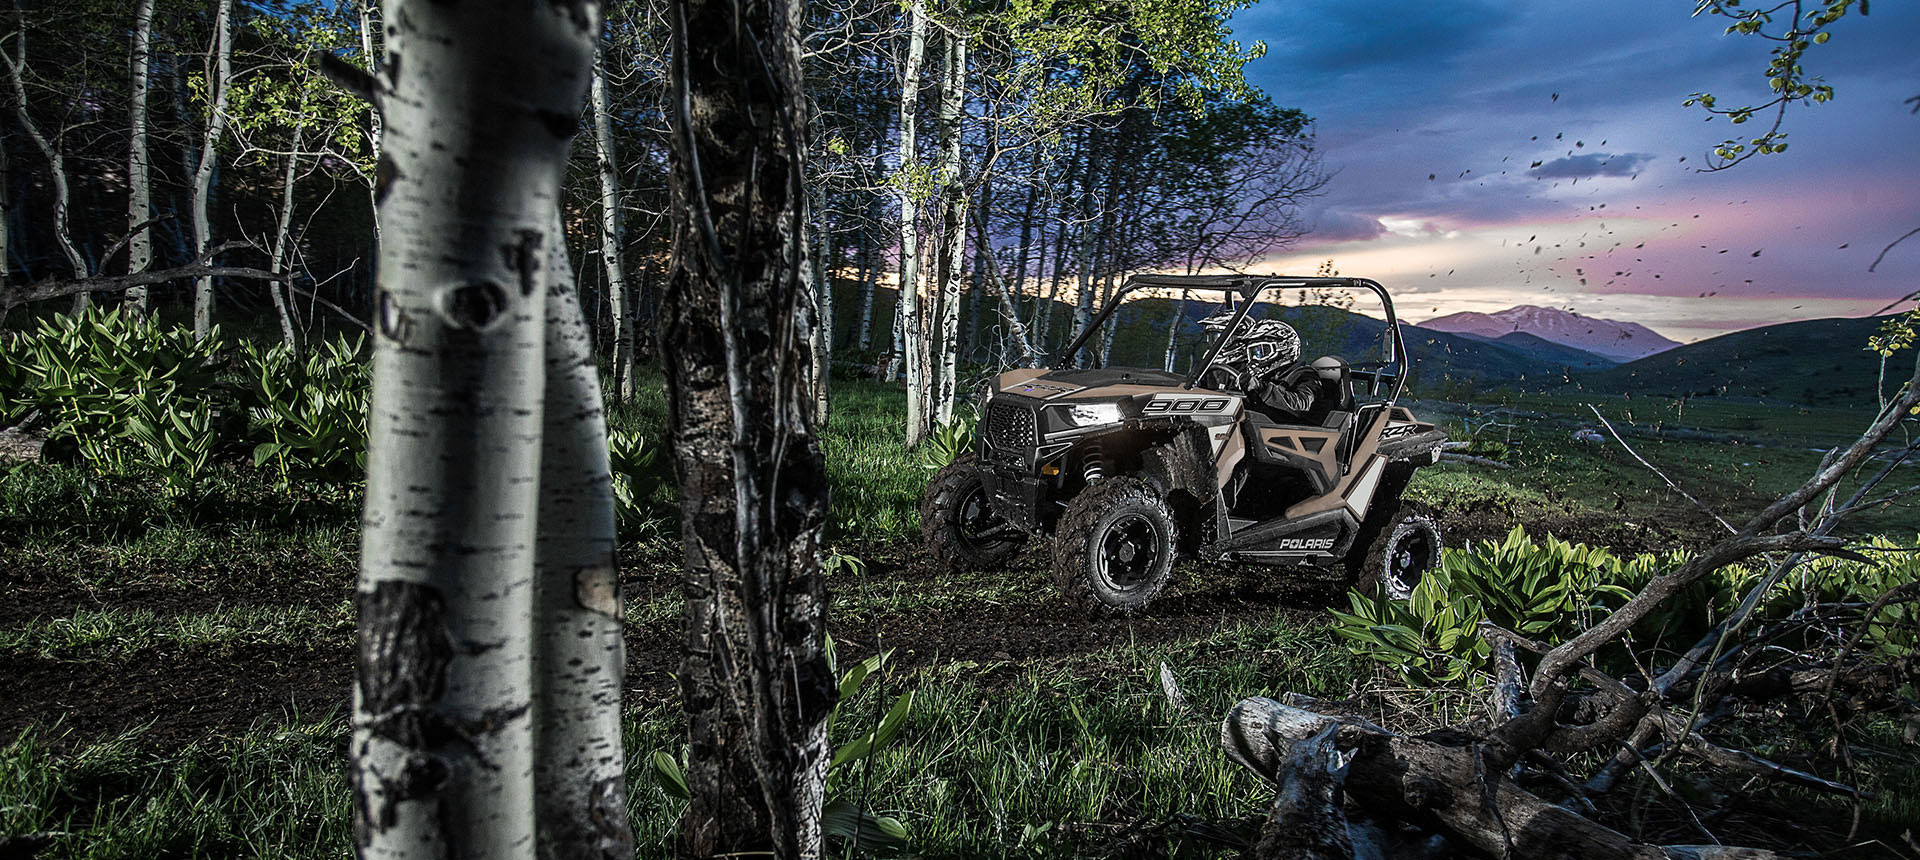 2020 RZR<sup>®</sup> Trail 900 Instagram image 3